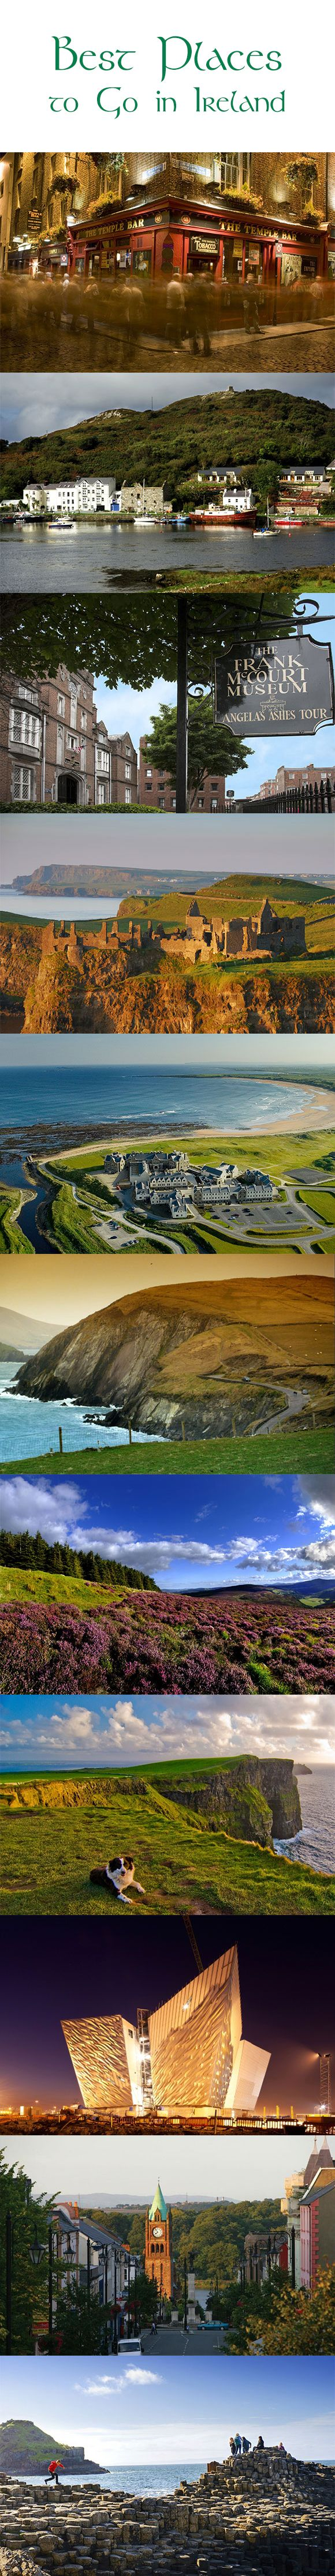 Just in case Ireland is on your bucket list. Click through to explore some of…